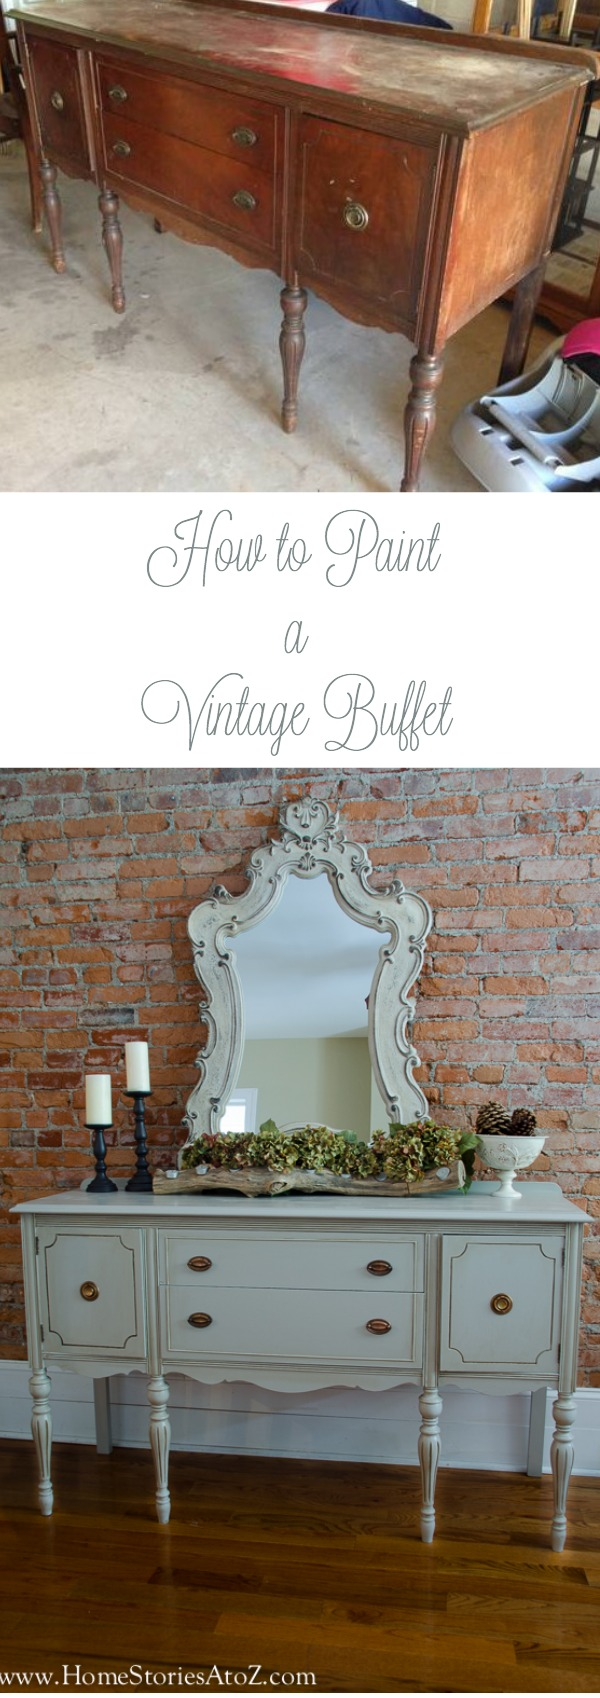 How to paint a vintage buffet home stories a to z - How To Paint A Vintage Buffet